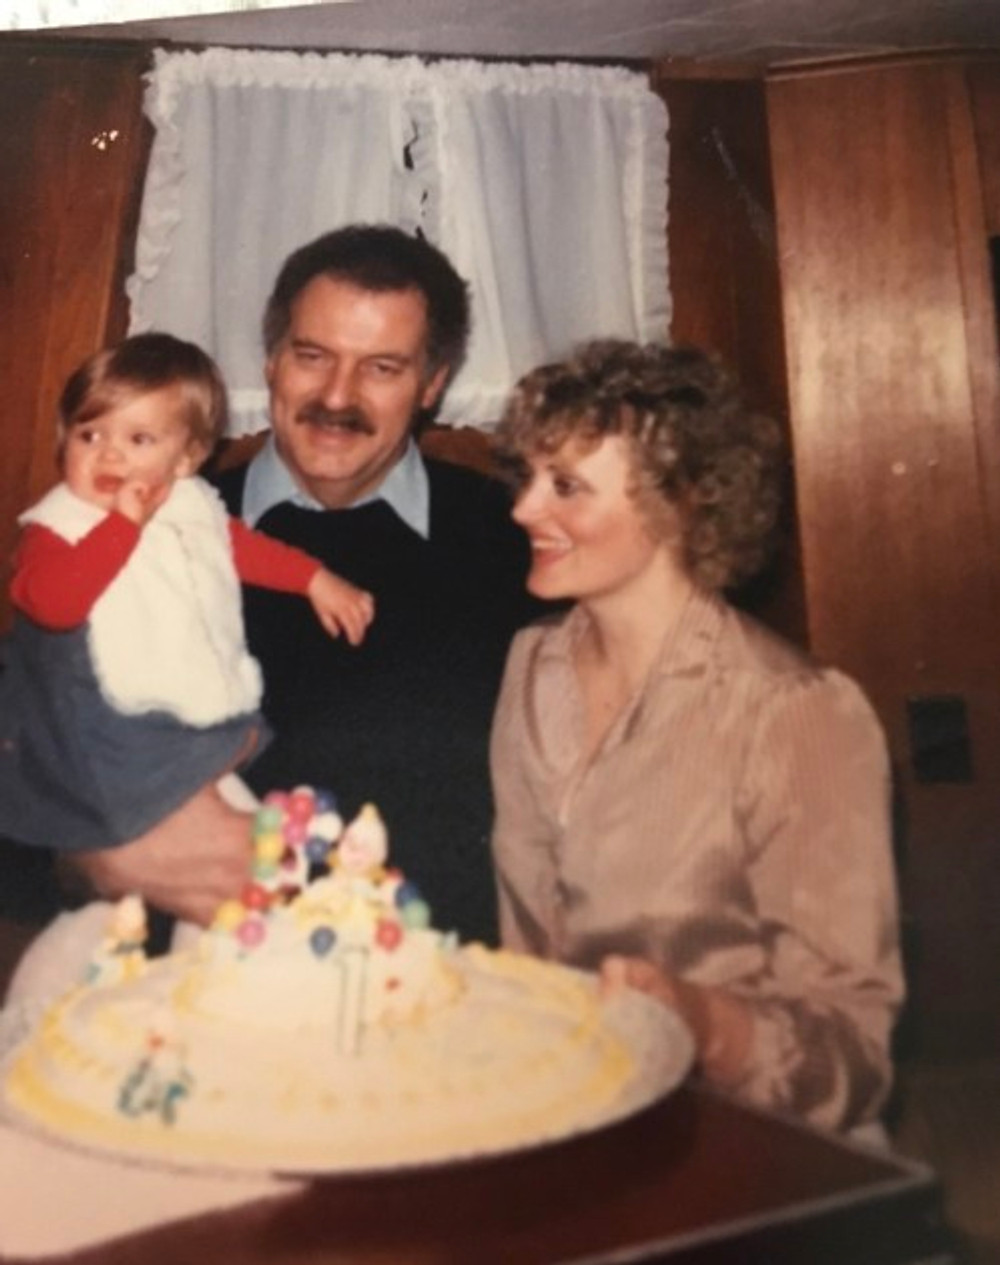 Me with my parents on my first birthday, 1983.